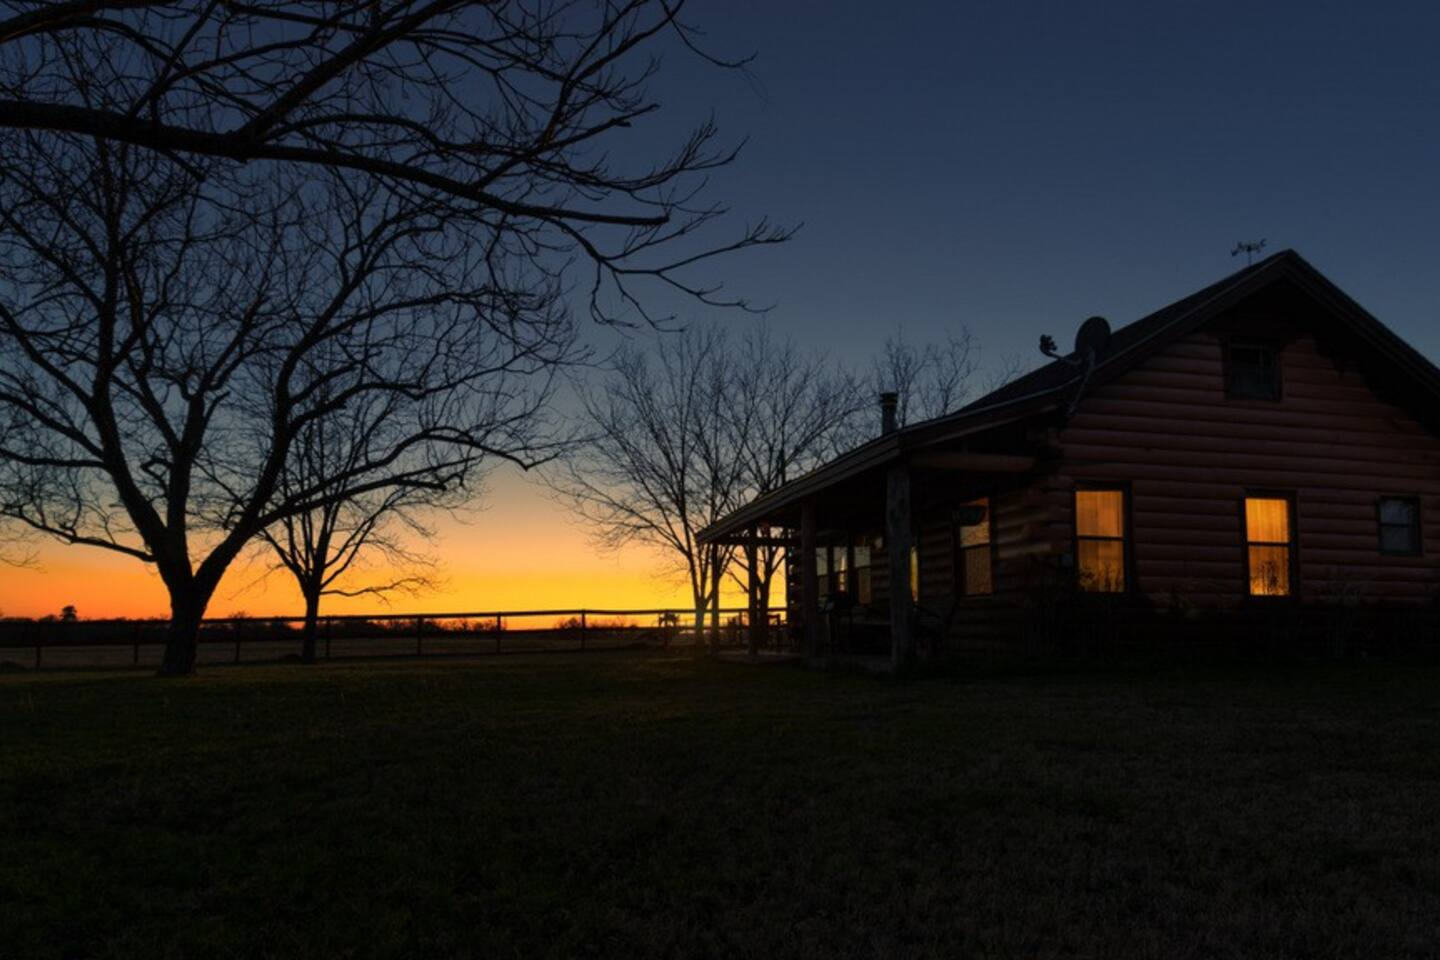 The sunsets at Fossil Tree Farm are Amazing!  Come see for yourself.